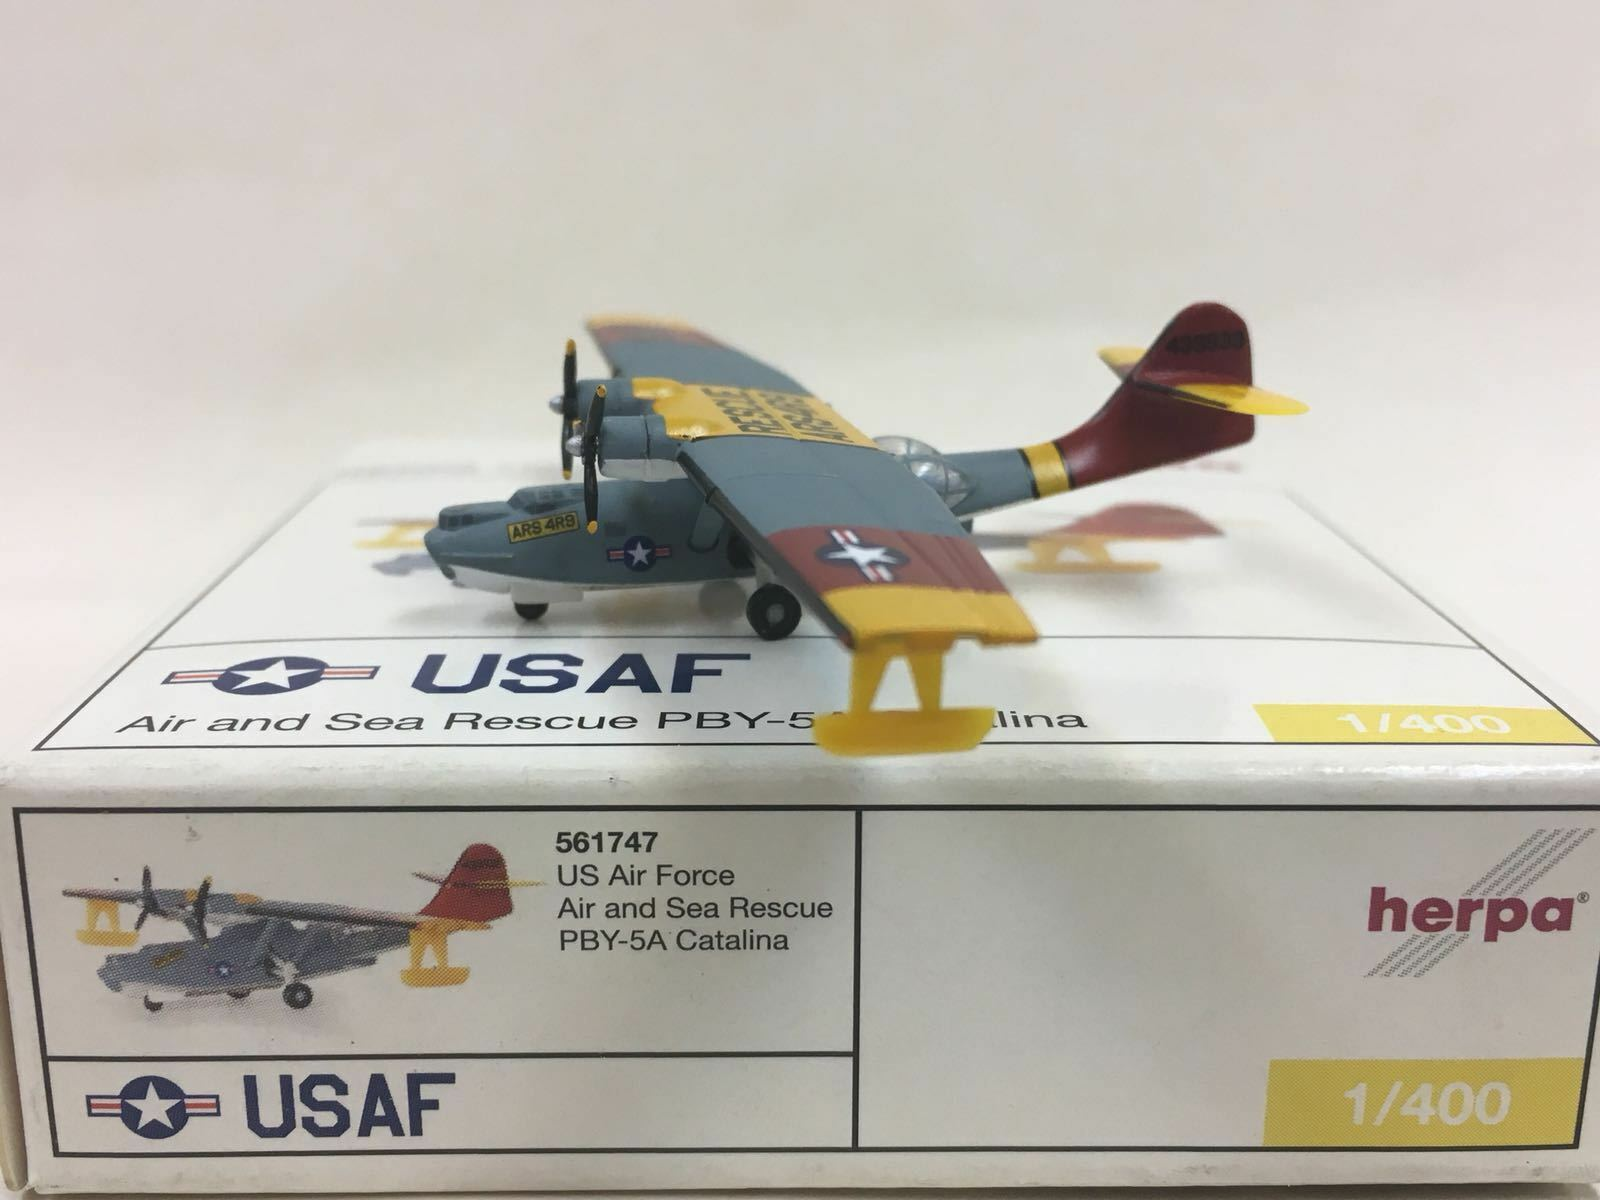 Herpa Wings US Air Force Air and Sea Rescue 1 400 PBY-5A Catalina 561747